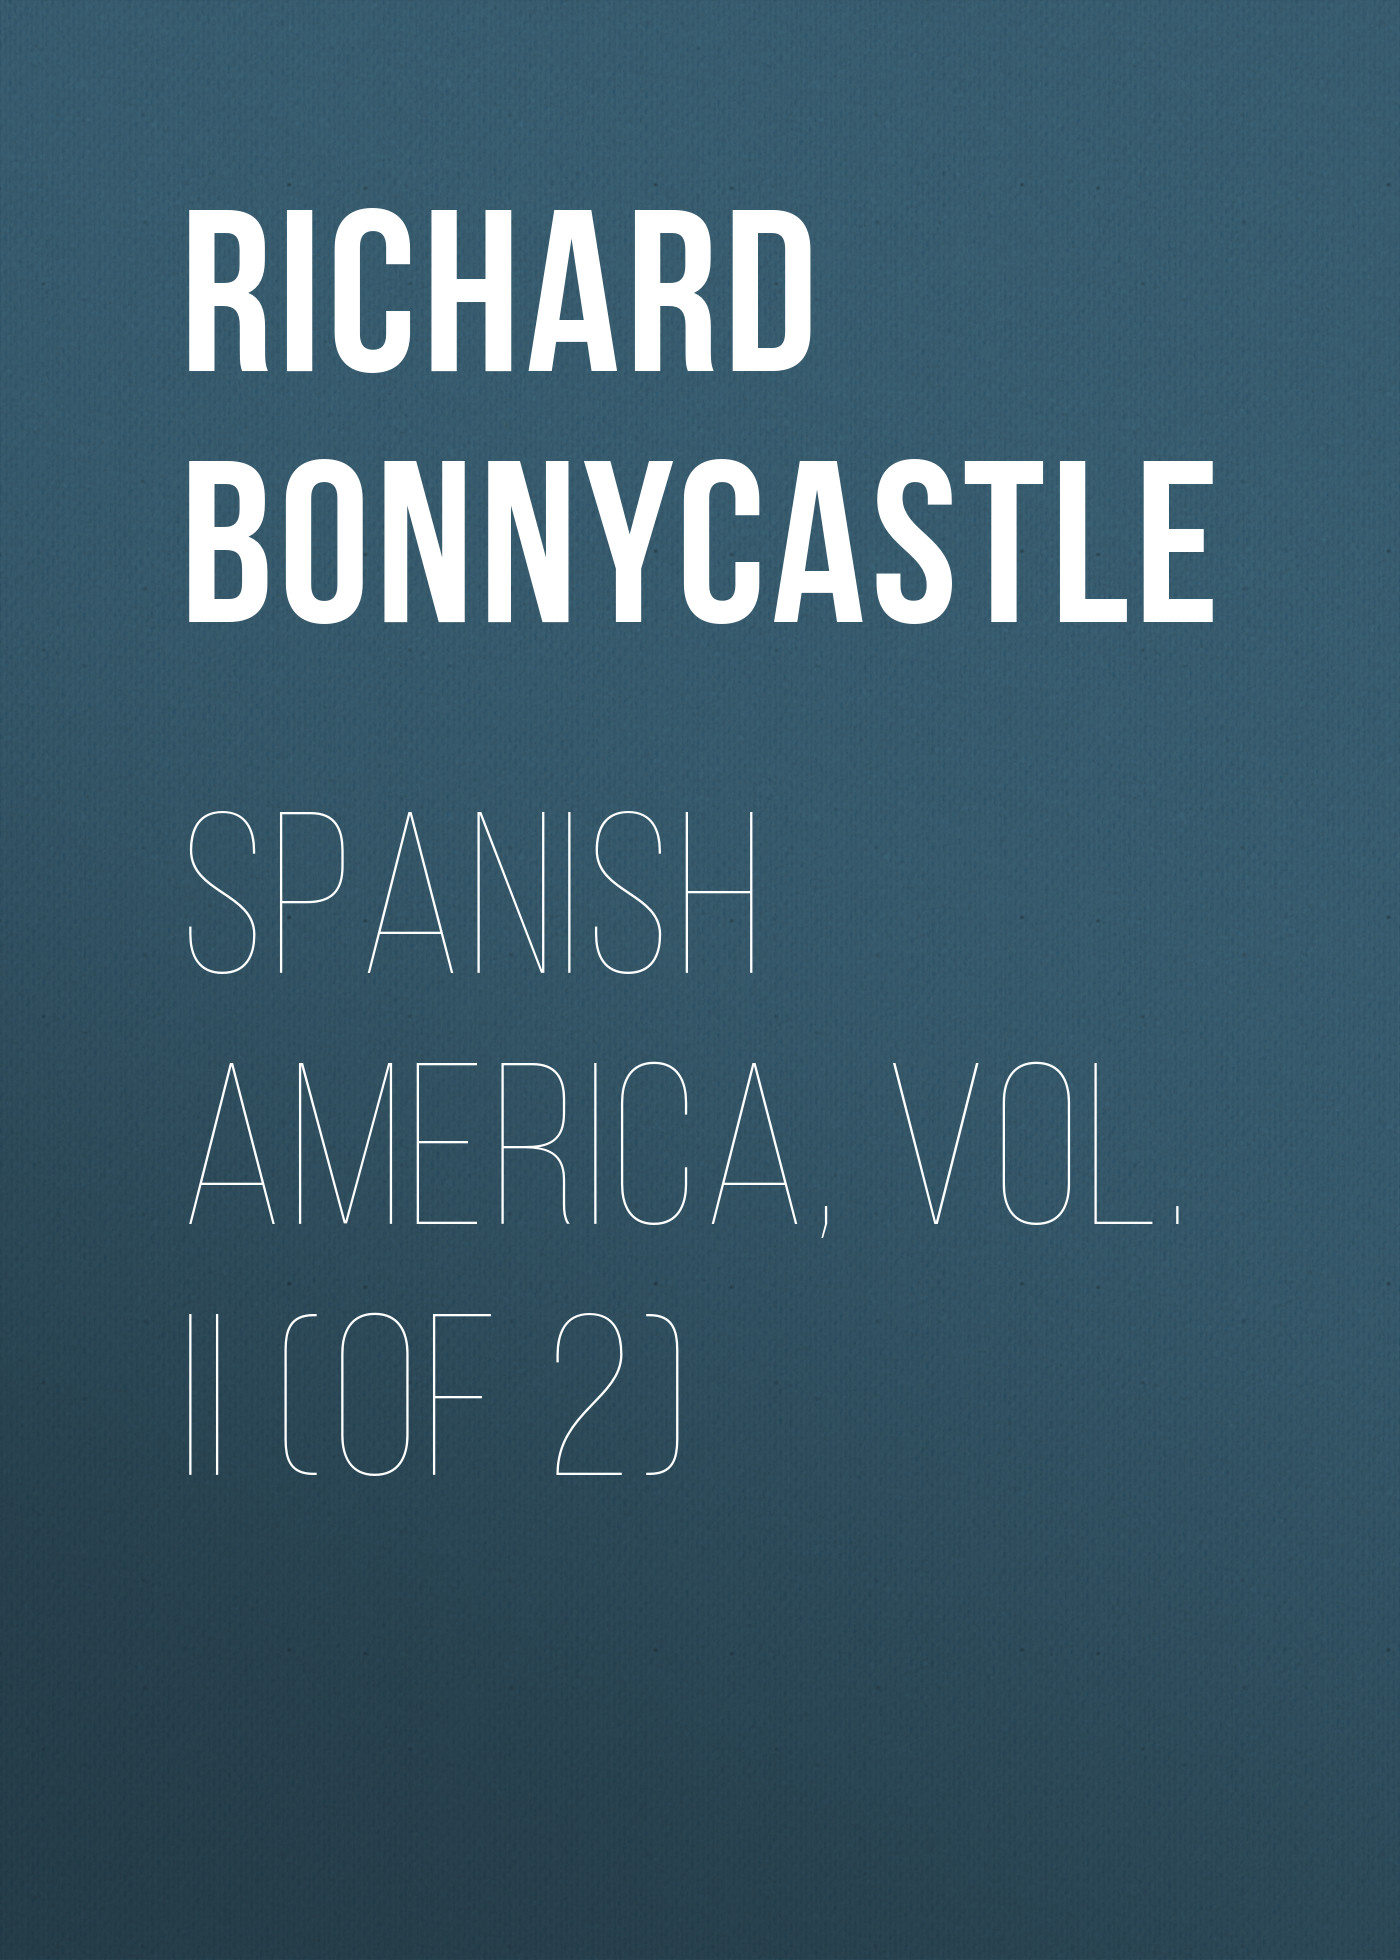 Bonnycastle Richard Henry Spanish America, Vol. II (of 2) richard caruso carusoism ii more poems of riveting revelations from stone sculptor richard caruso featuring oh could it be